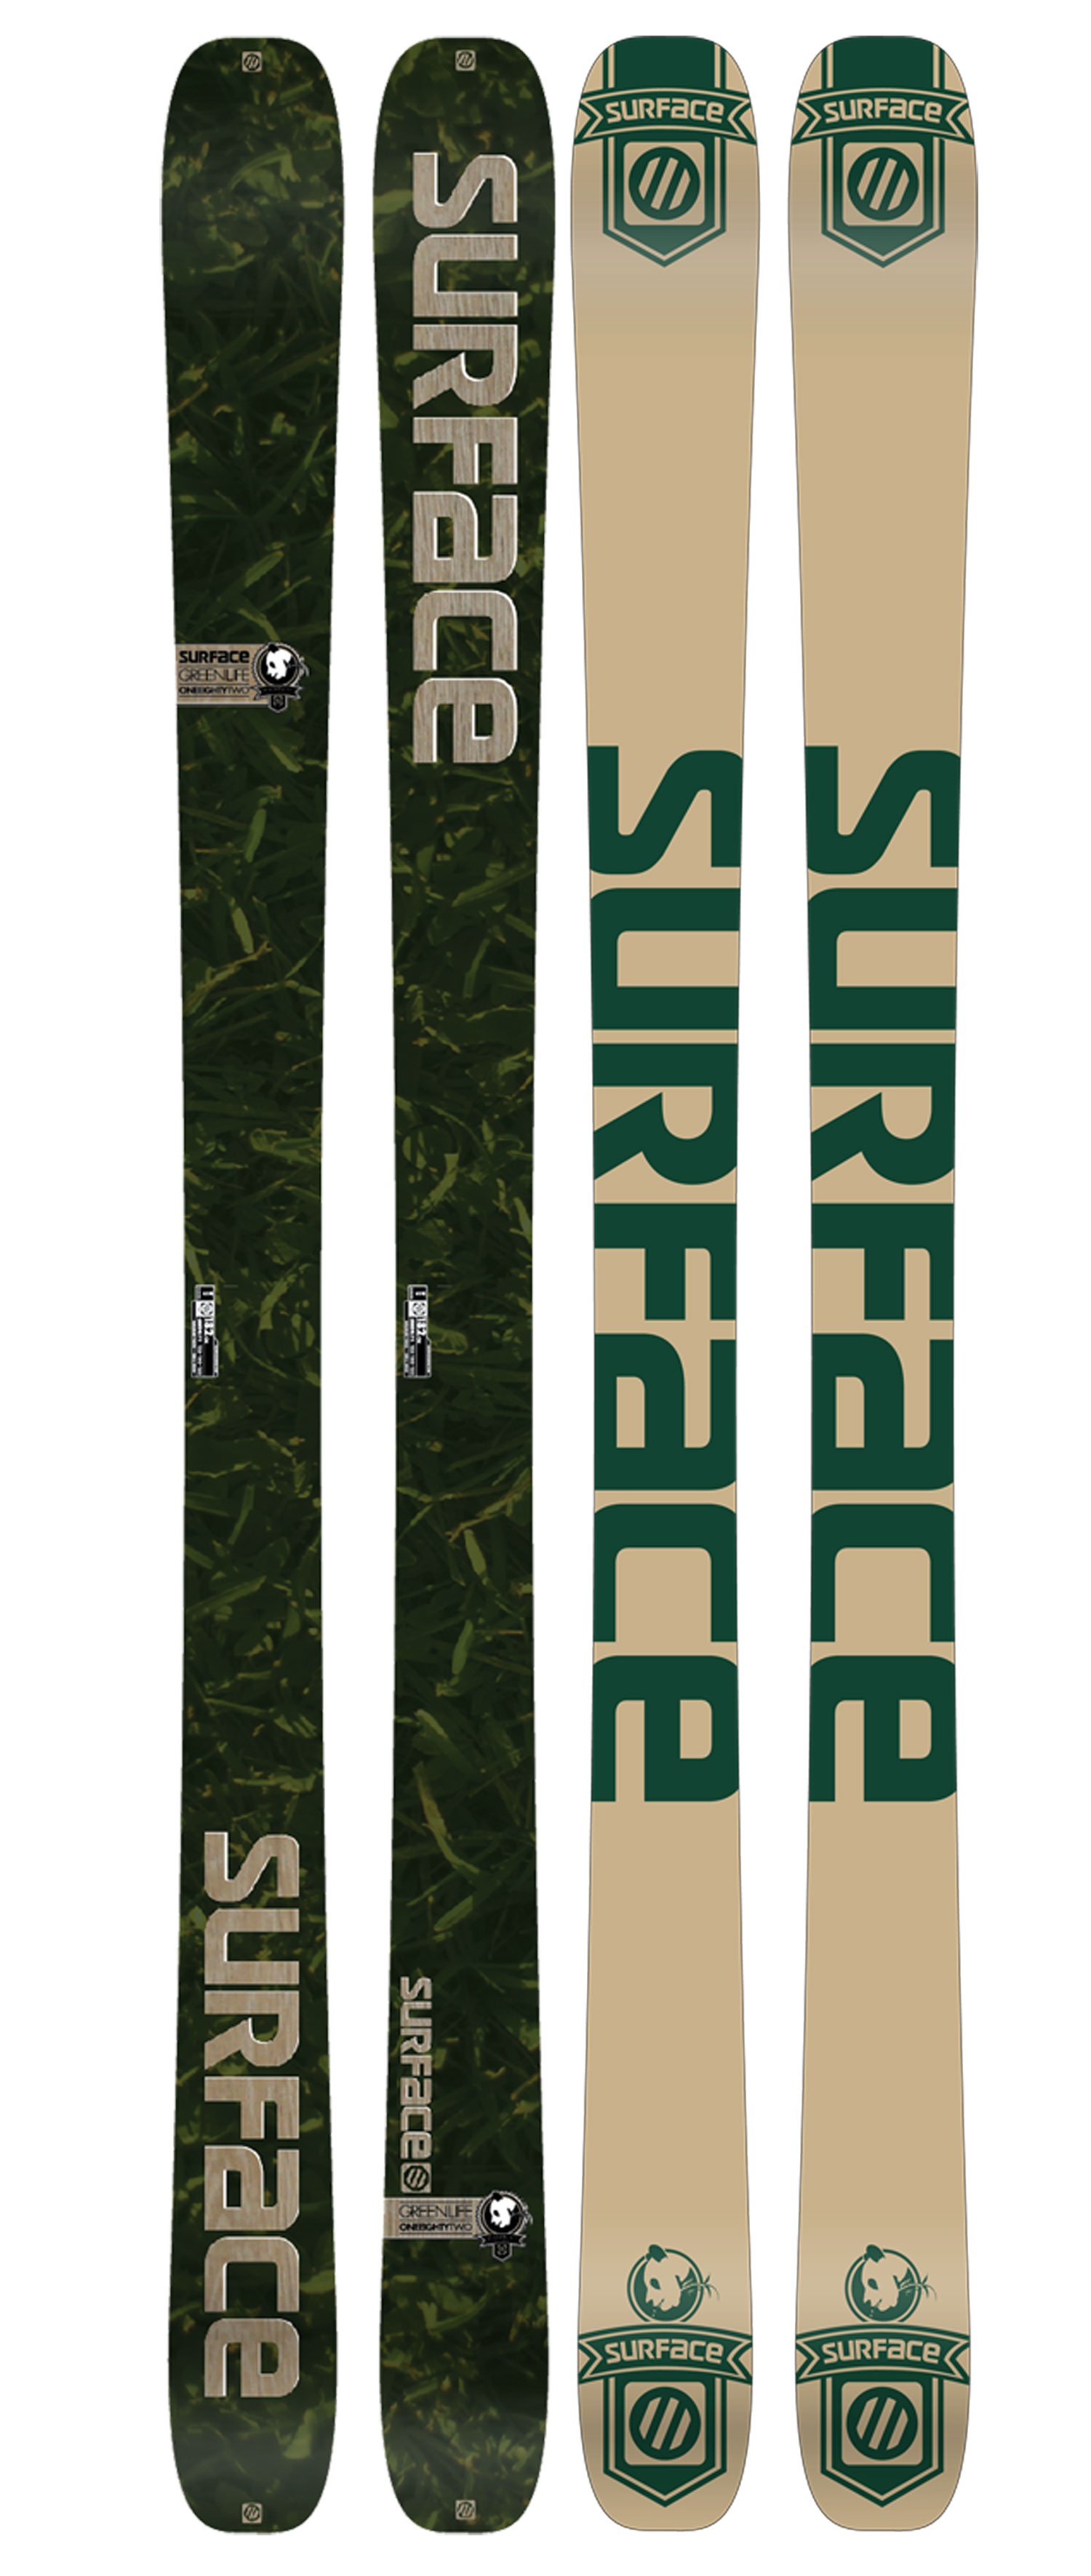 "Ski Built on the classic Watch Life chassis, the Green Life is our ""do-good"" ski. Teaming up with the NRDC once again, we are striving to create environmental awareness among the ski community. Do your part and become a member of the NRDC now.Key Features of the Surface Green Life Skis: All Mountain, All Condition Mid-Wide Waist Traditional Camber Construction Directional Taper Shape Poplar Wood Core Kevlar ABS Sidewall Extruded Base 2.5mm Full-Wrap Steel Edges Binding Reinforcement Sheets 2mm Mini Cap Design Radius (m): 18.5 (172), 19.5 (182) Weight - set (lbs): 7.8 (172), 8.4 (182) Dimensions (cm): 132/100/122 (172), 132/100/122 (182) - $298.95"